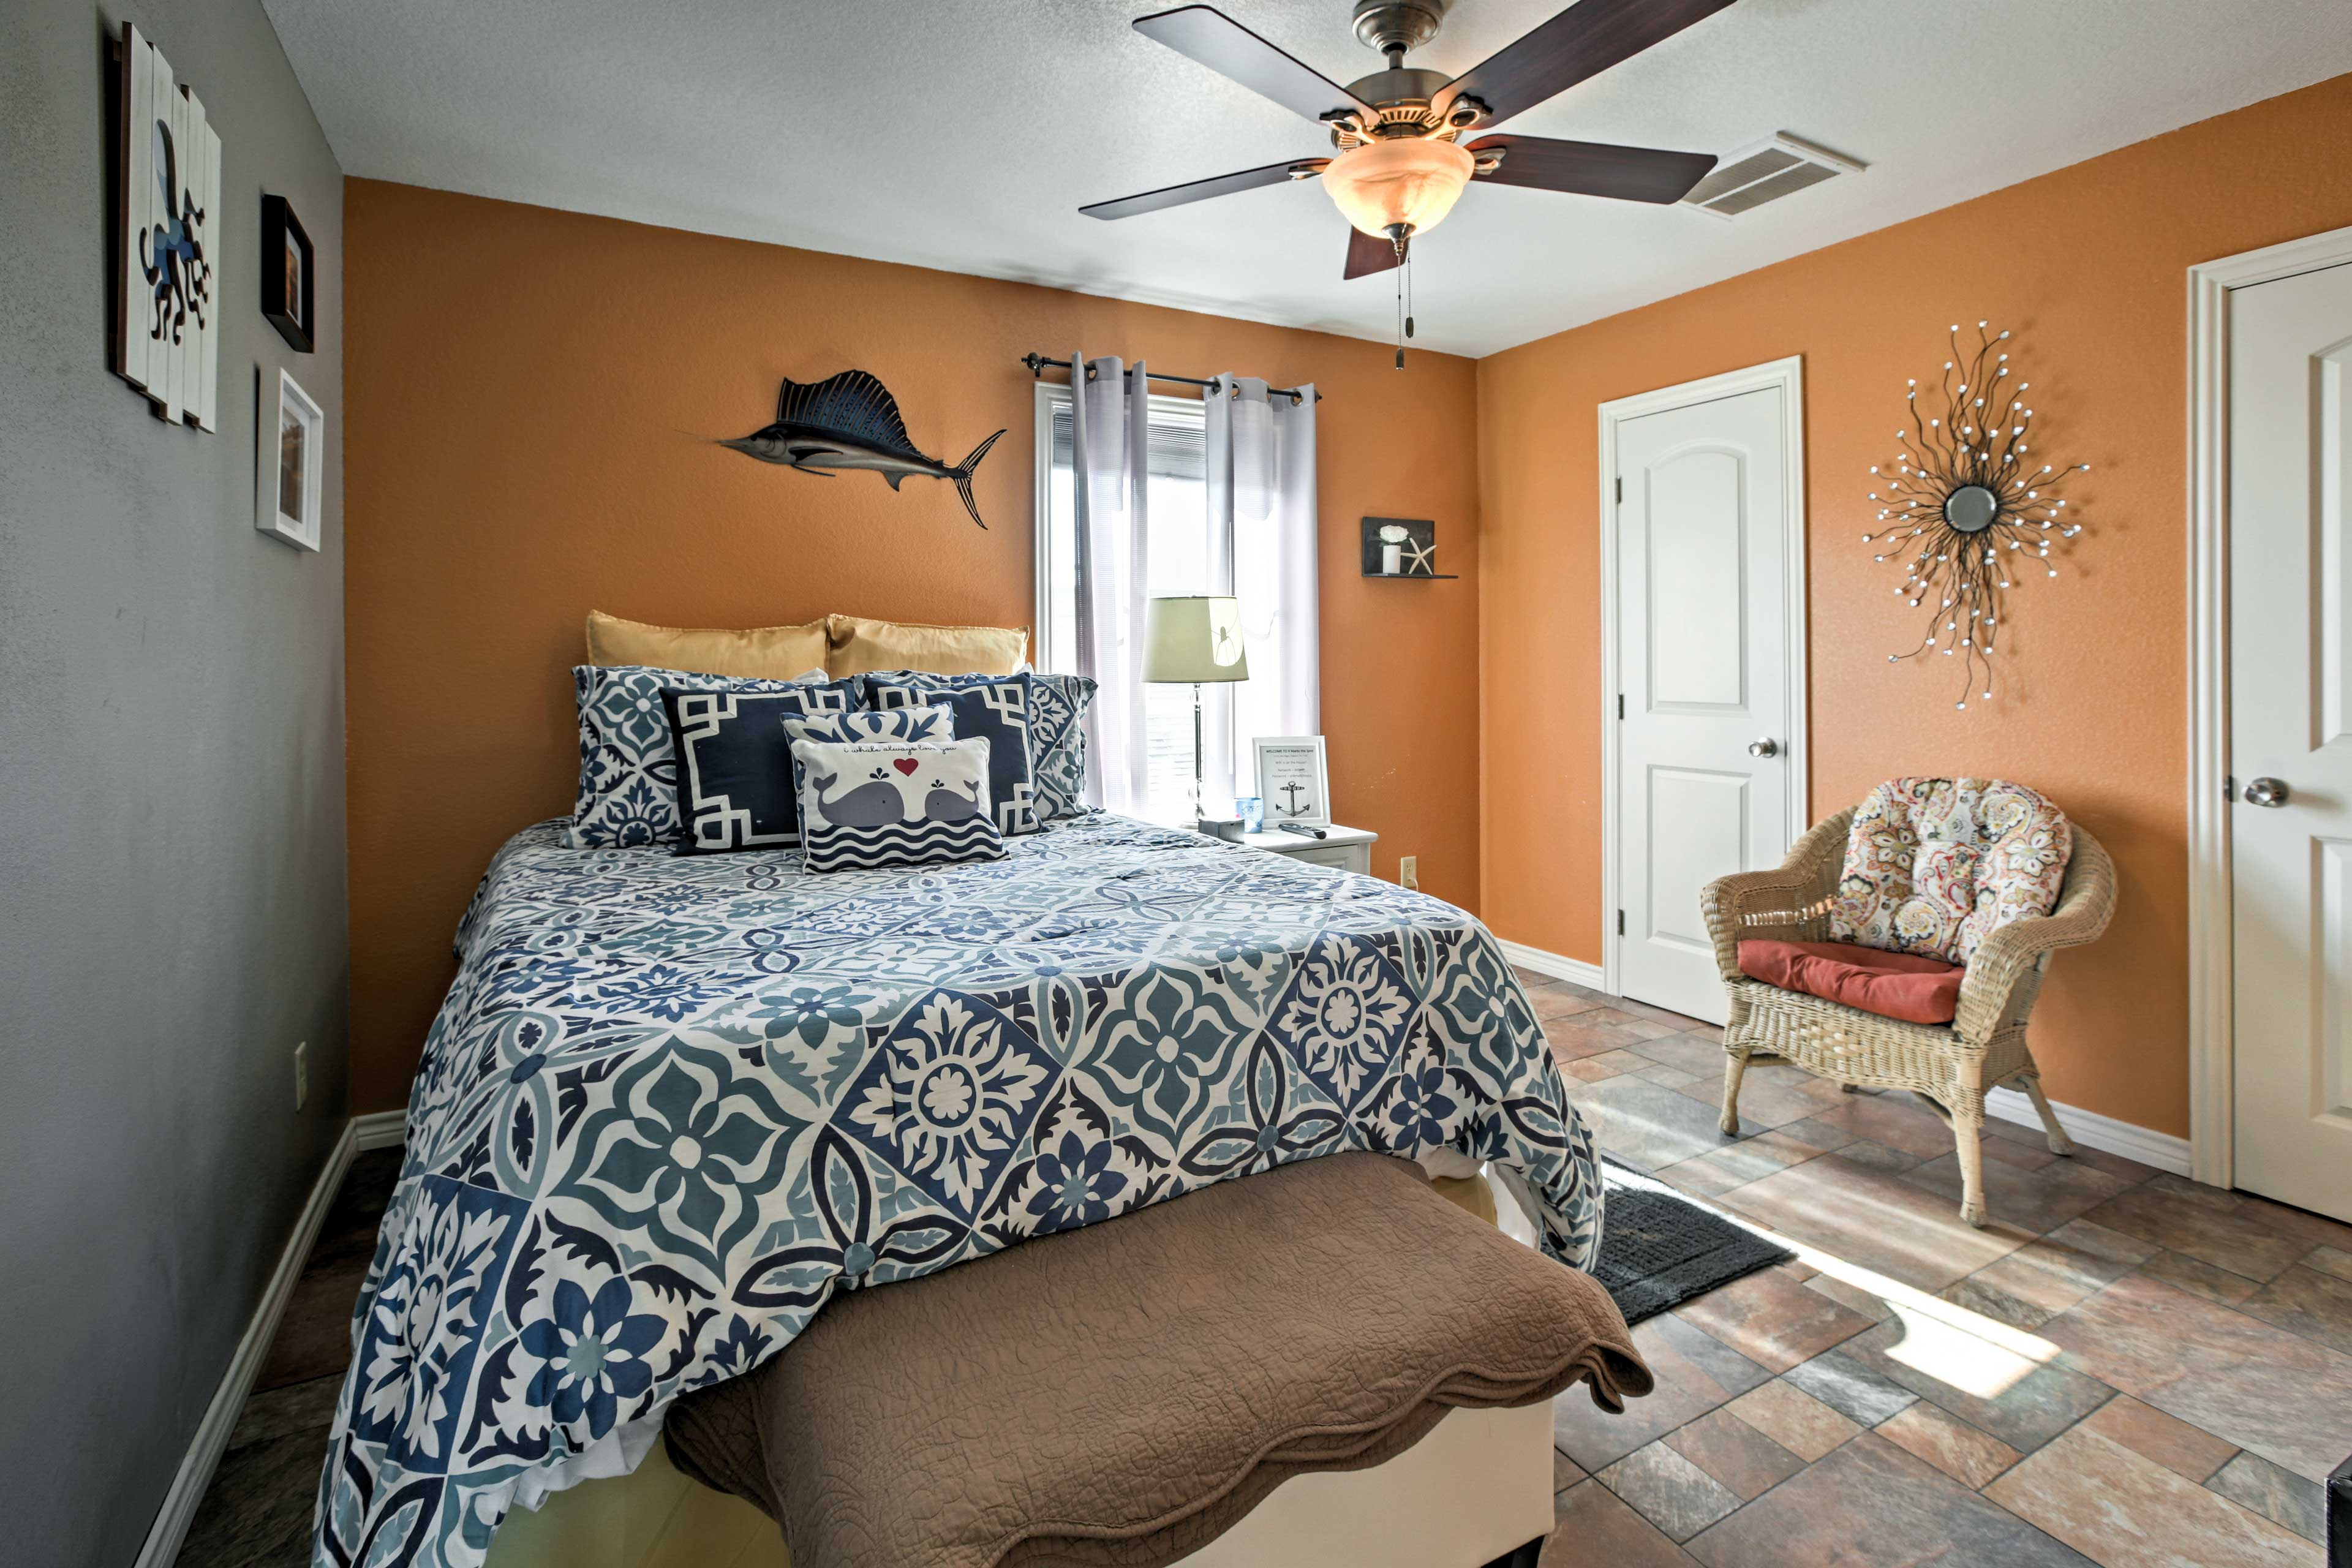 The second bedroom features a bright pop of color and a comfortable queen bed.